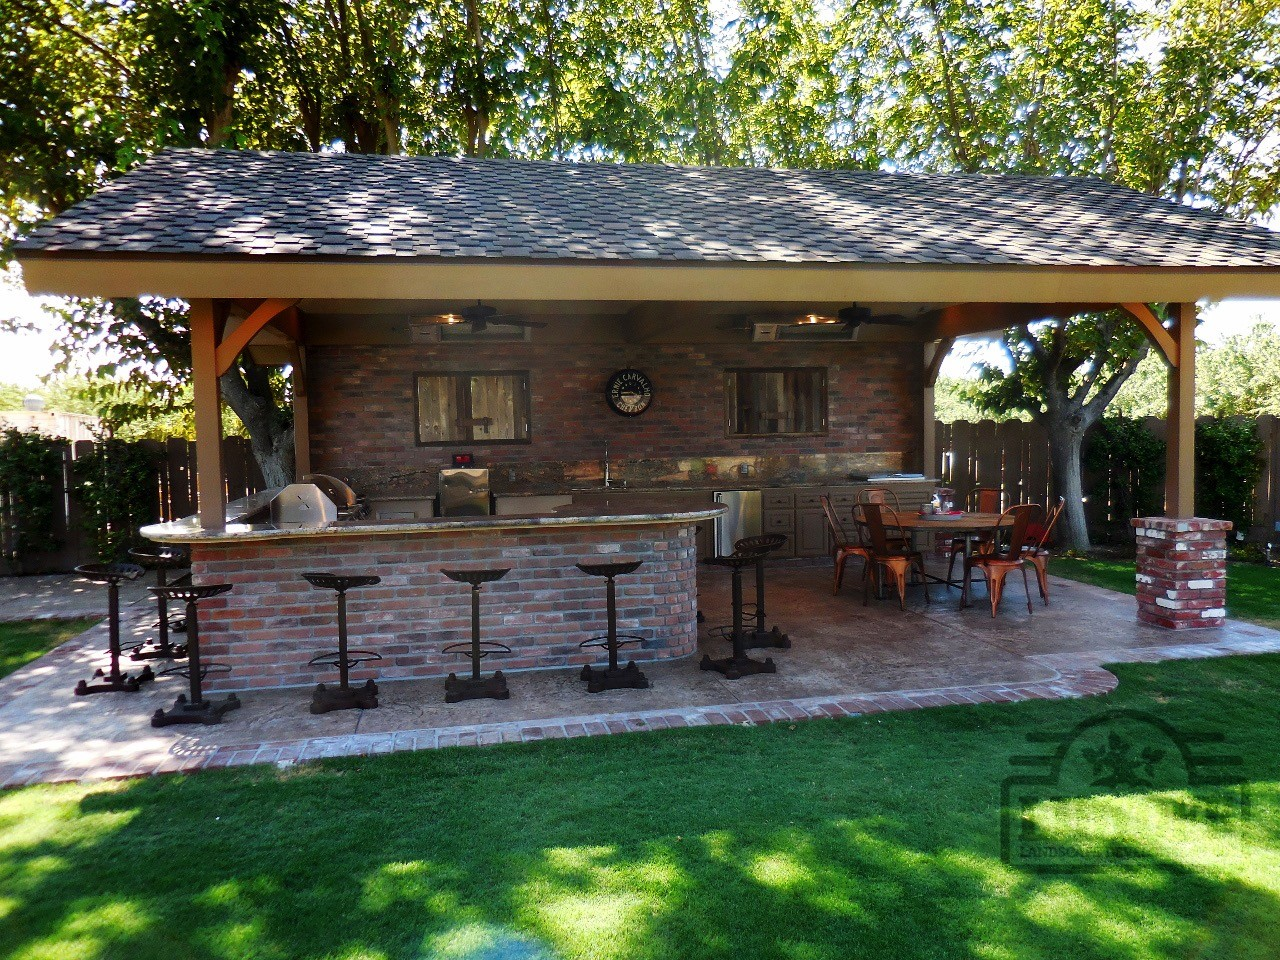 Outdoor Kitchens | Lidyoff Landscaping Development Co.